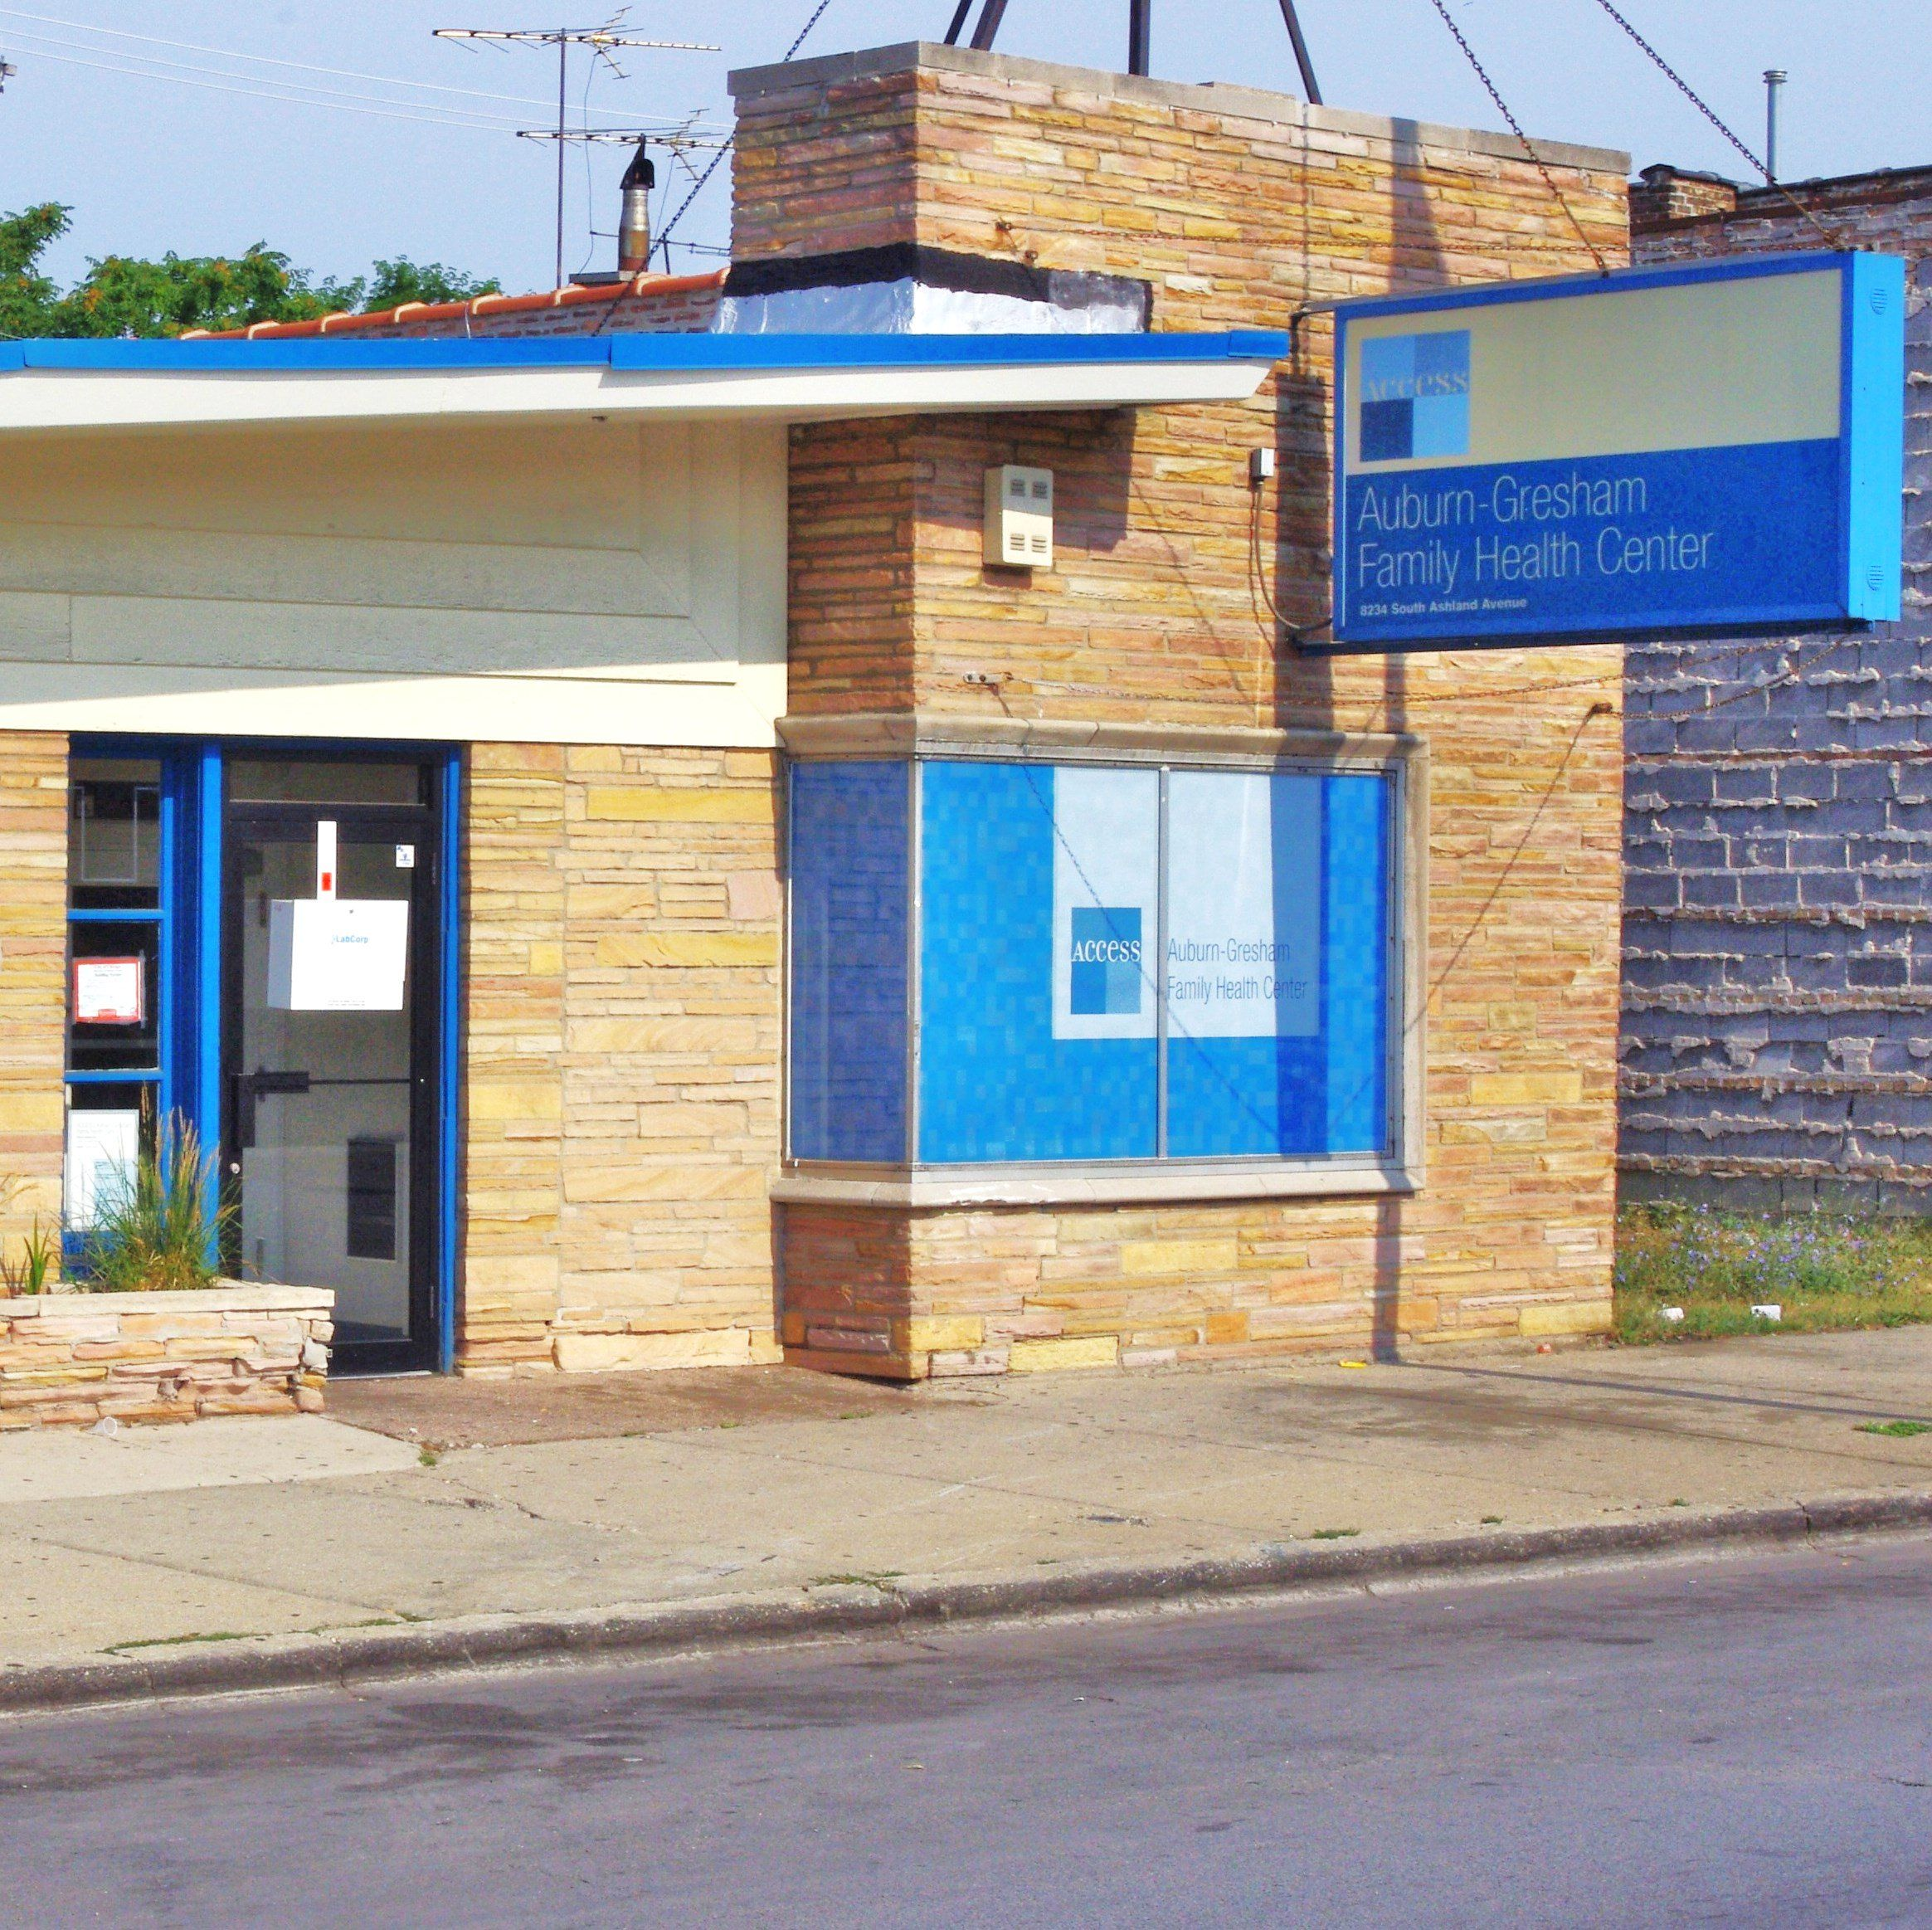 Auburn Gresham Family Health Center